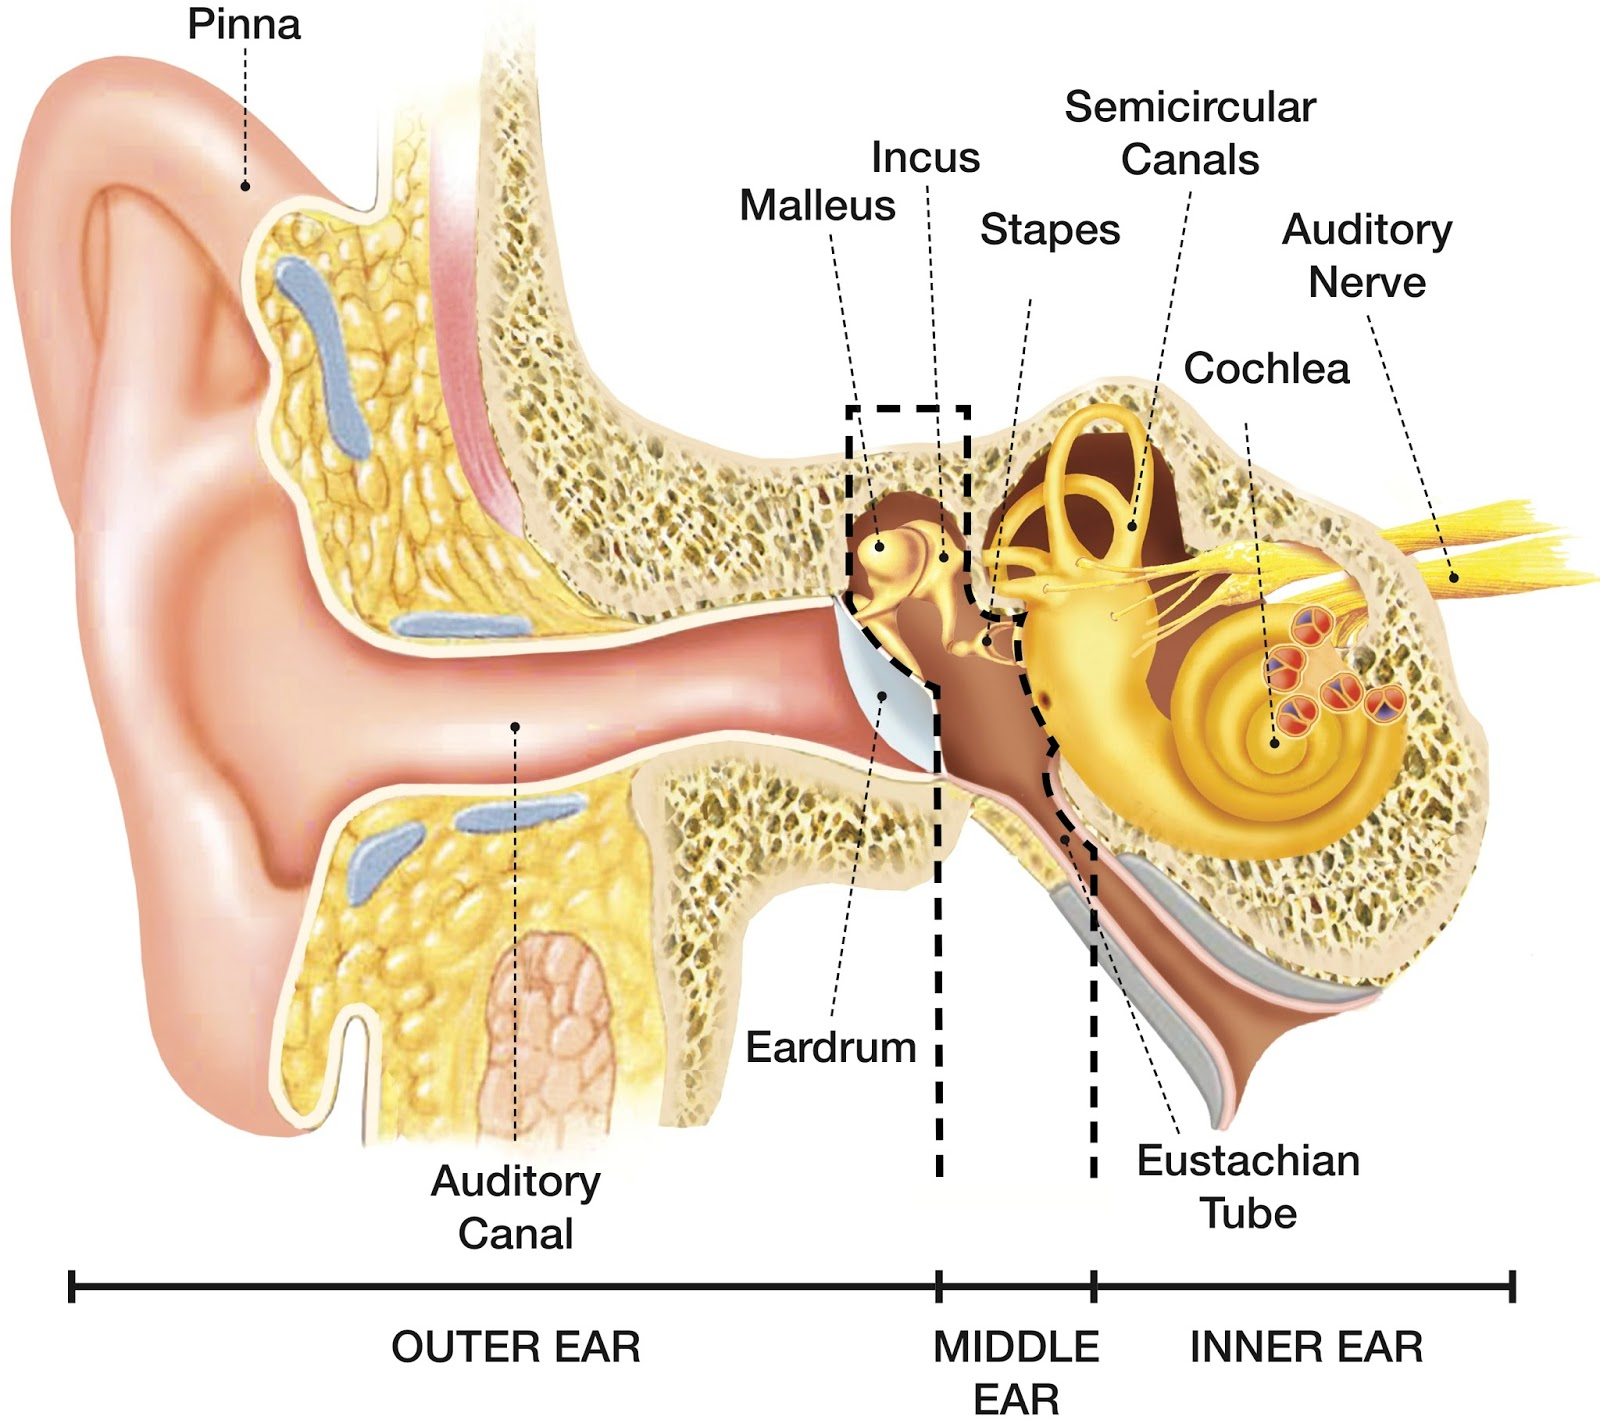 Speech Language Pathology Amp Audiology Hearing Disorders Of The Outer Ear